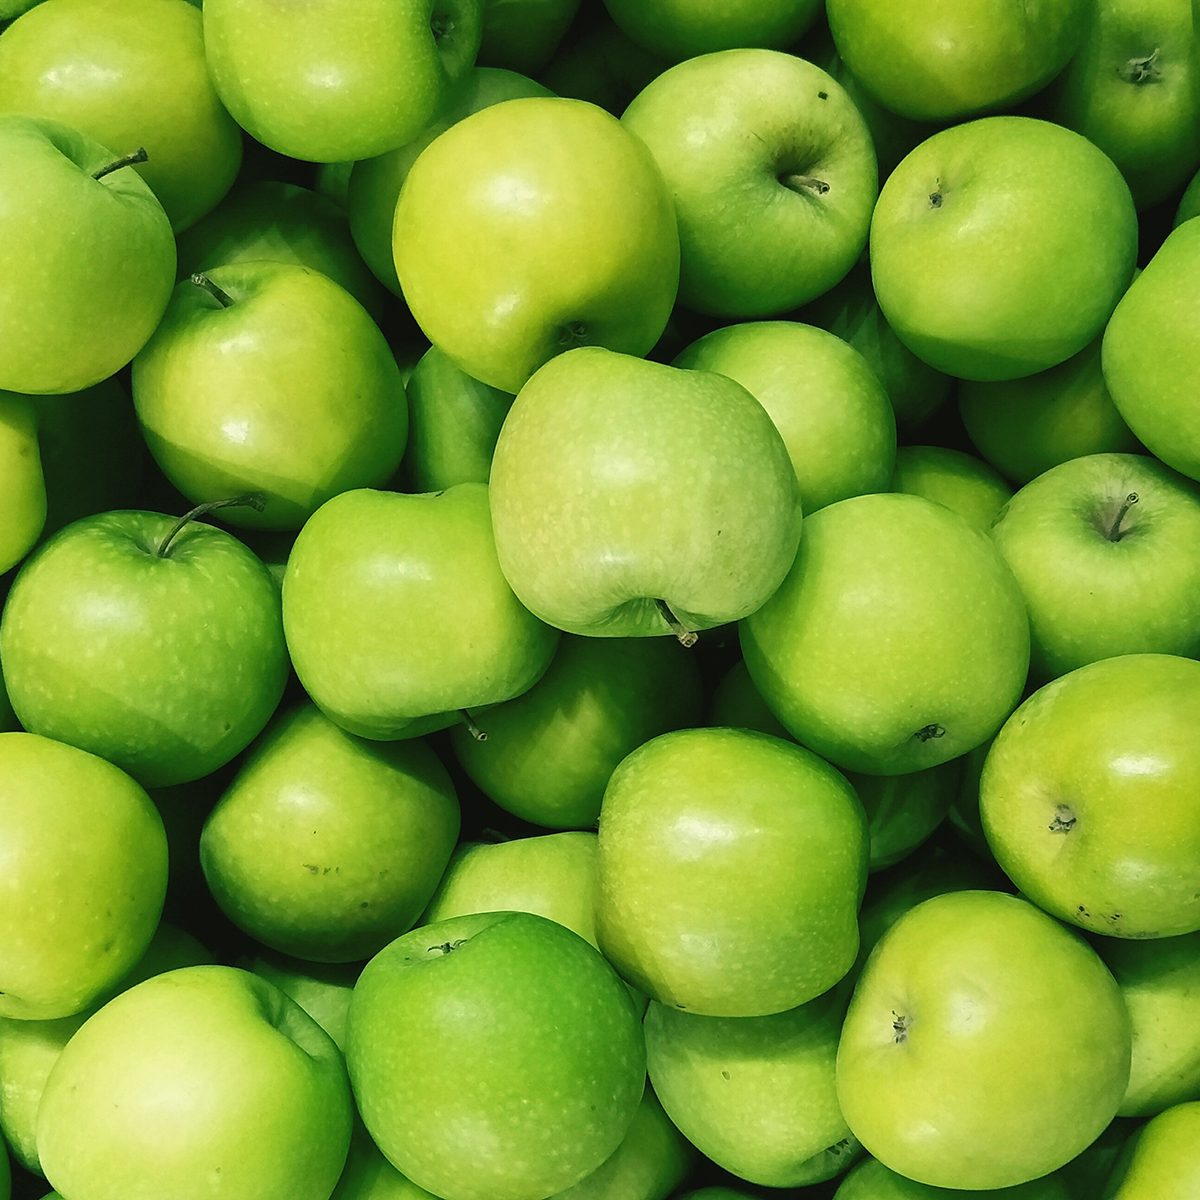 Full Frame Shot Of Granny Smith Apples For Sale In Market